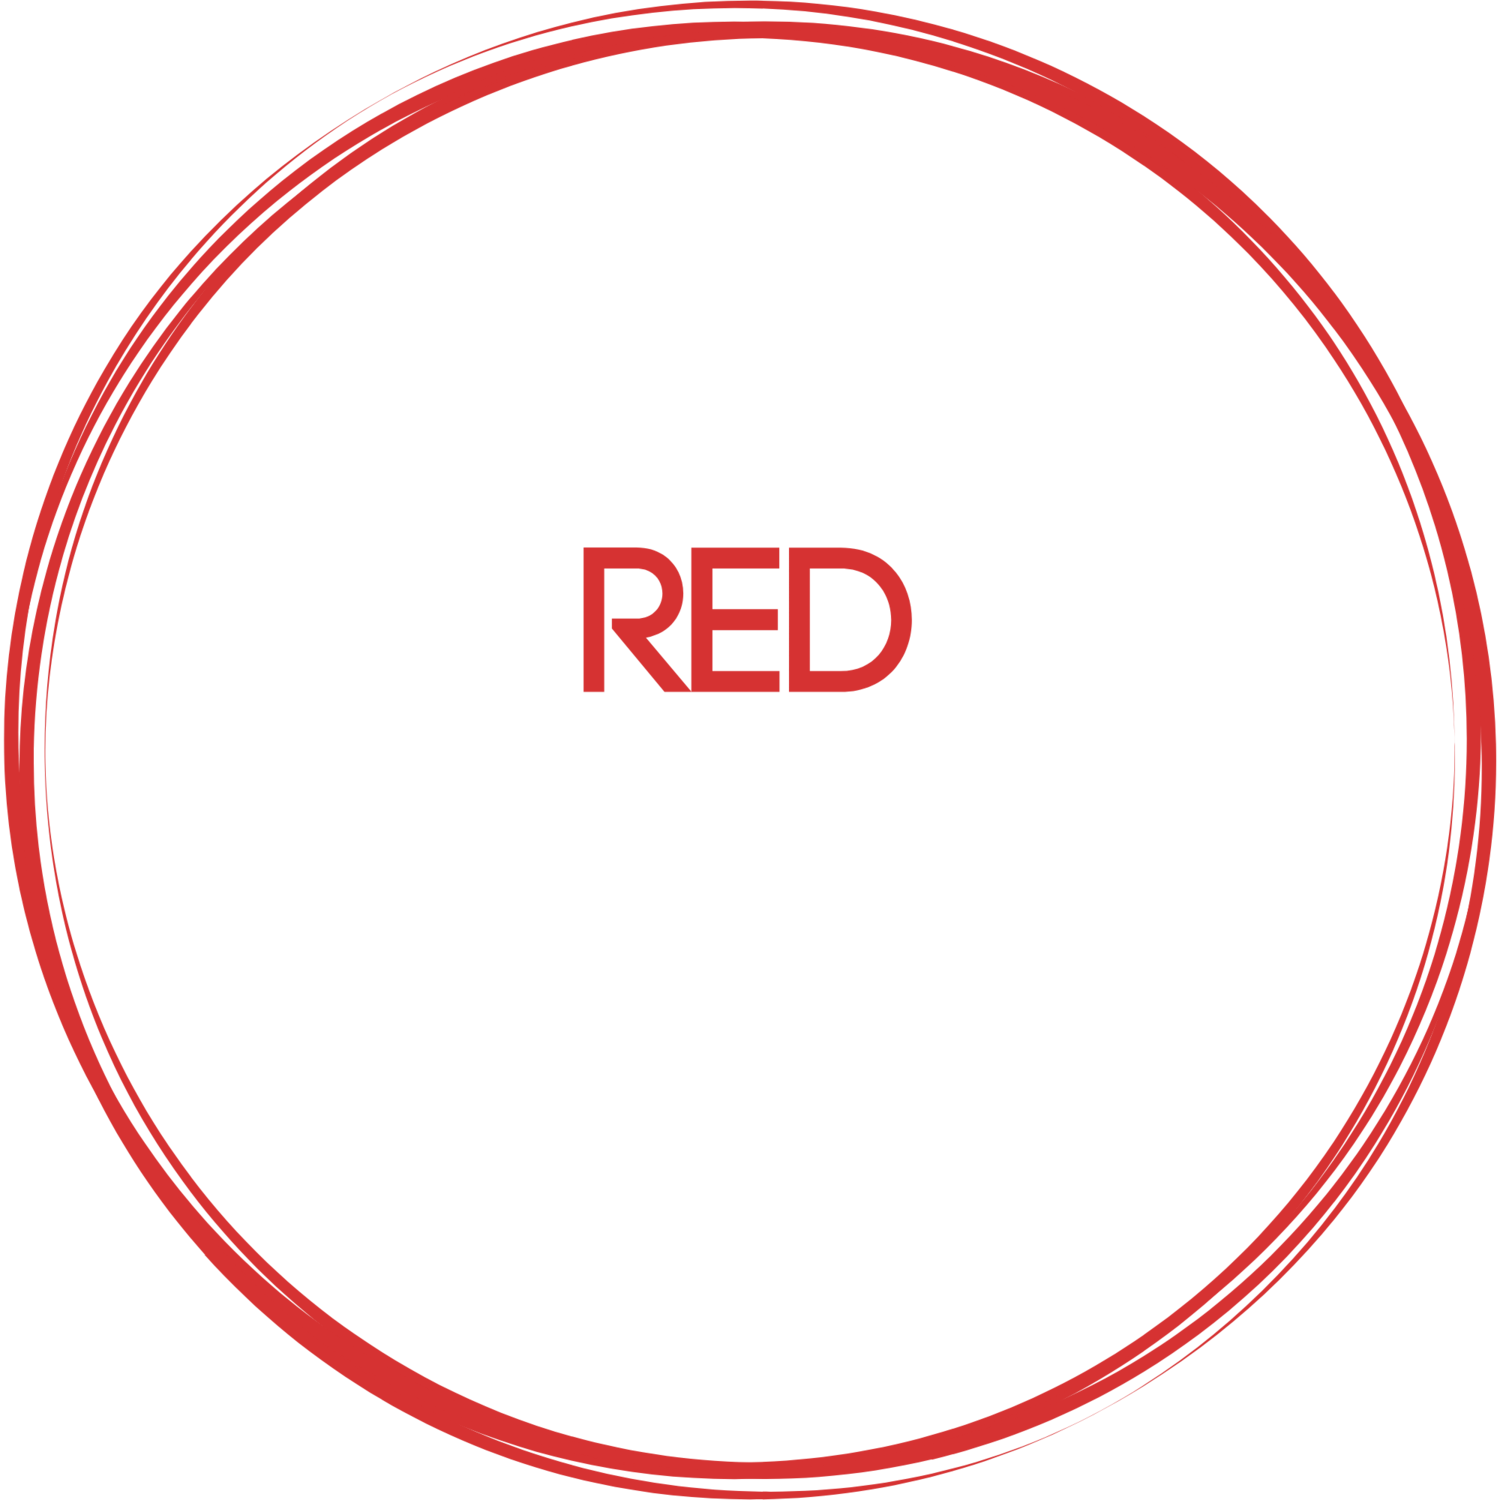 Red Mars - Transformación Digital